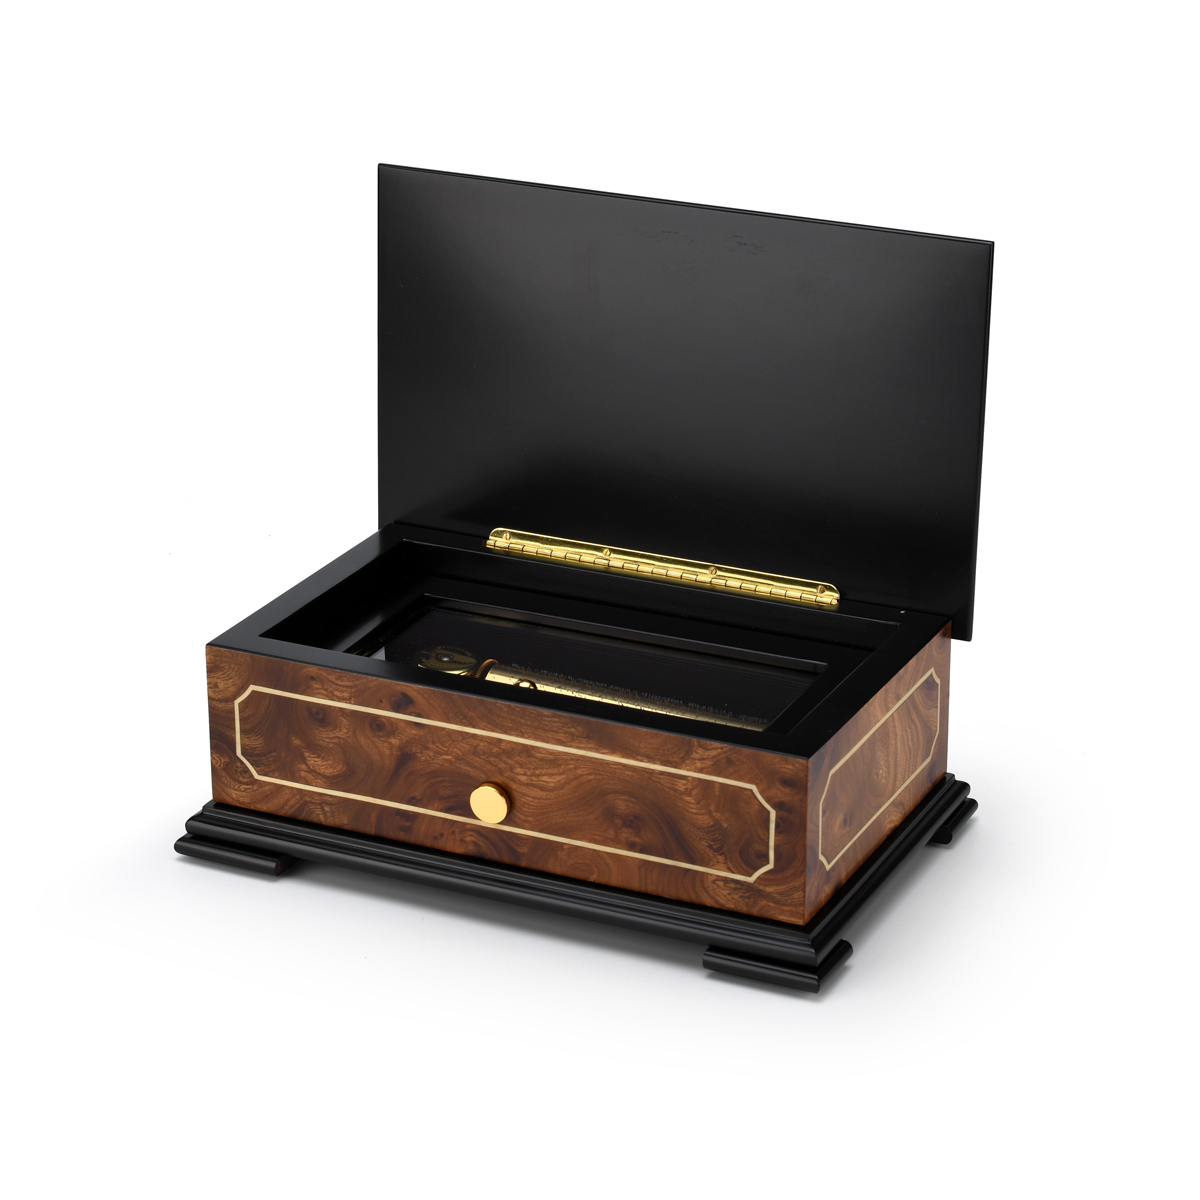 Sophisticated 72 Note Classic Style with Framed Panel Inlay Grand Music Box